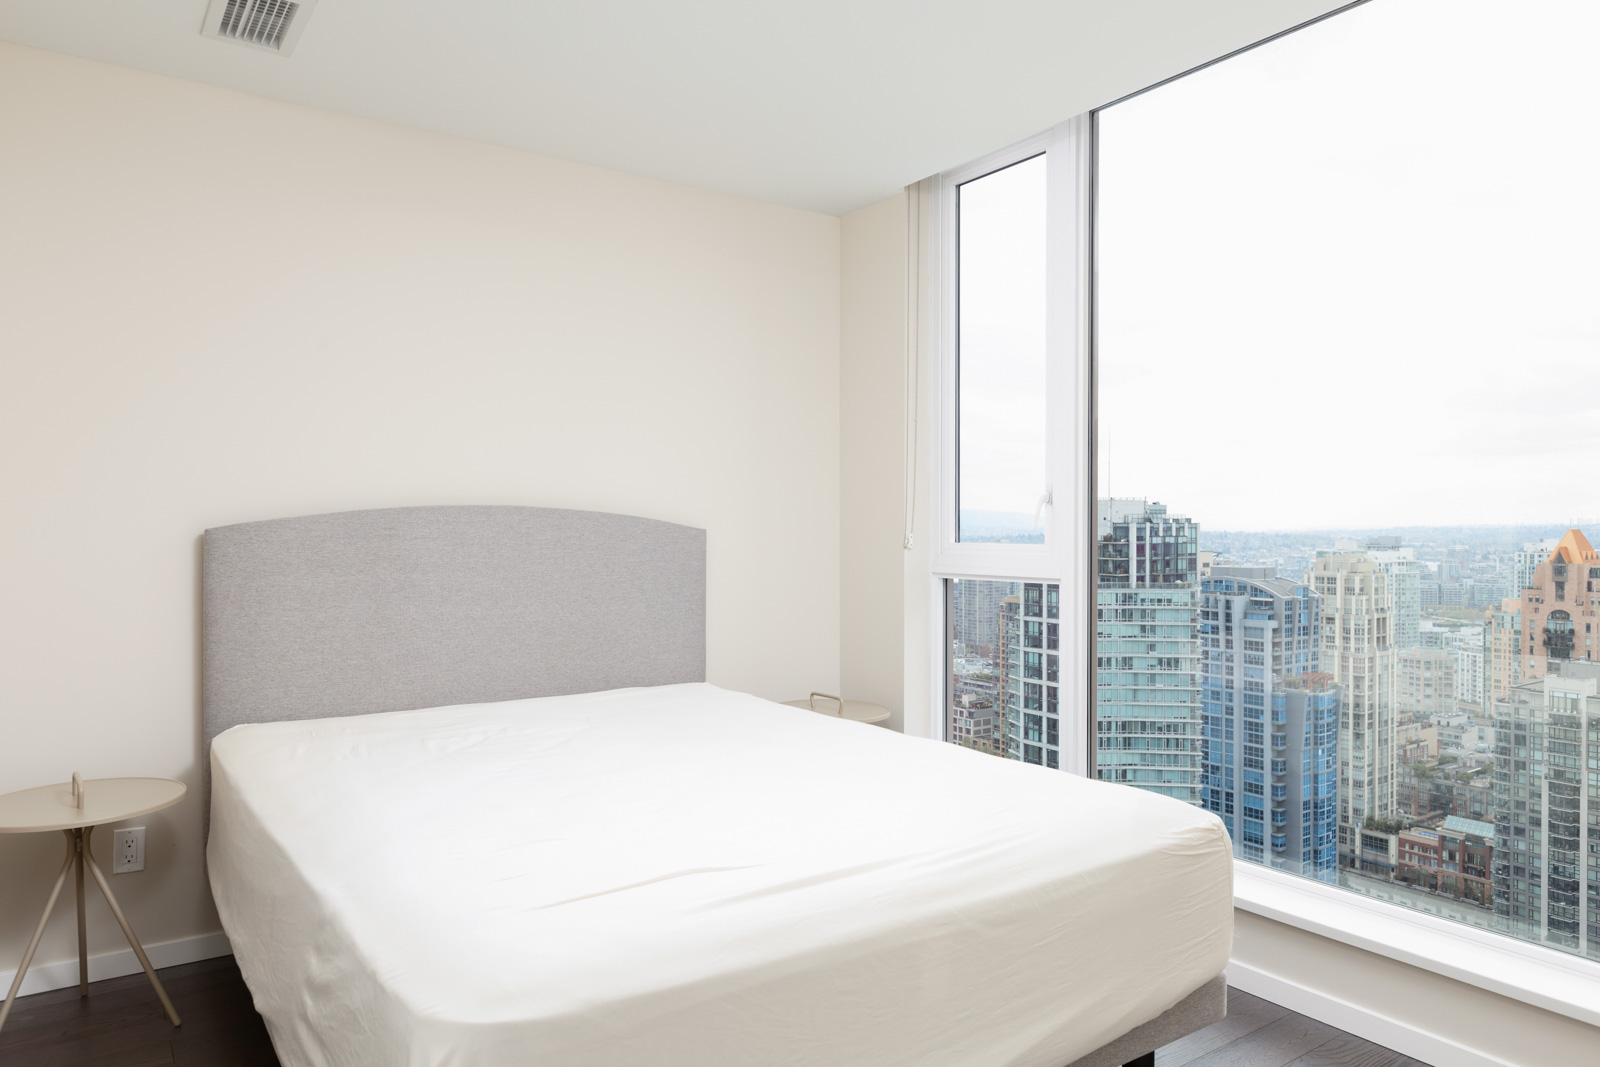 Bedroom in Vancouver rental condo with view.